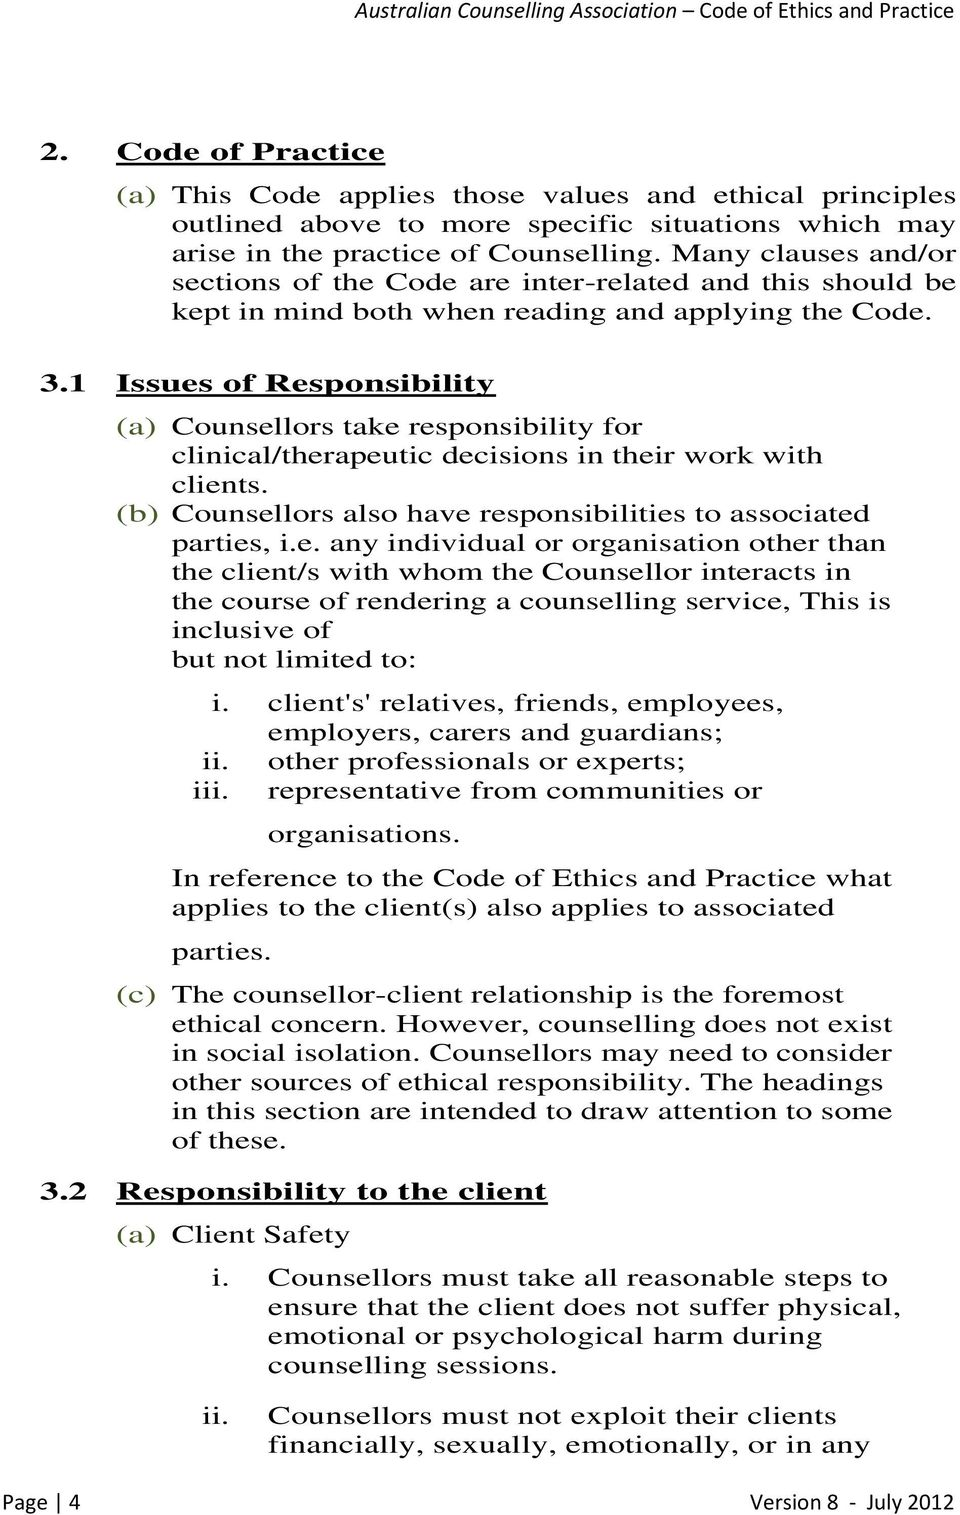 1 Issues of Responsibility (a) Counsellors take responsibility for clinical/therapeutic decisions in their work with clients. (b) Counsellors also have responsibilities to associated parties, i.e. any individual or organisation other than the client/s with whom the Counsellor interacts in the course of rendering a counselling service, This is inclusive of but not limited to: i.